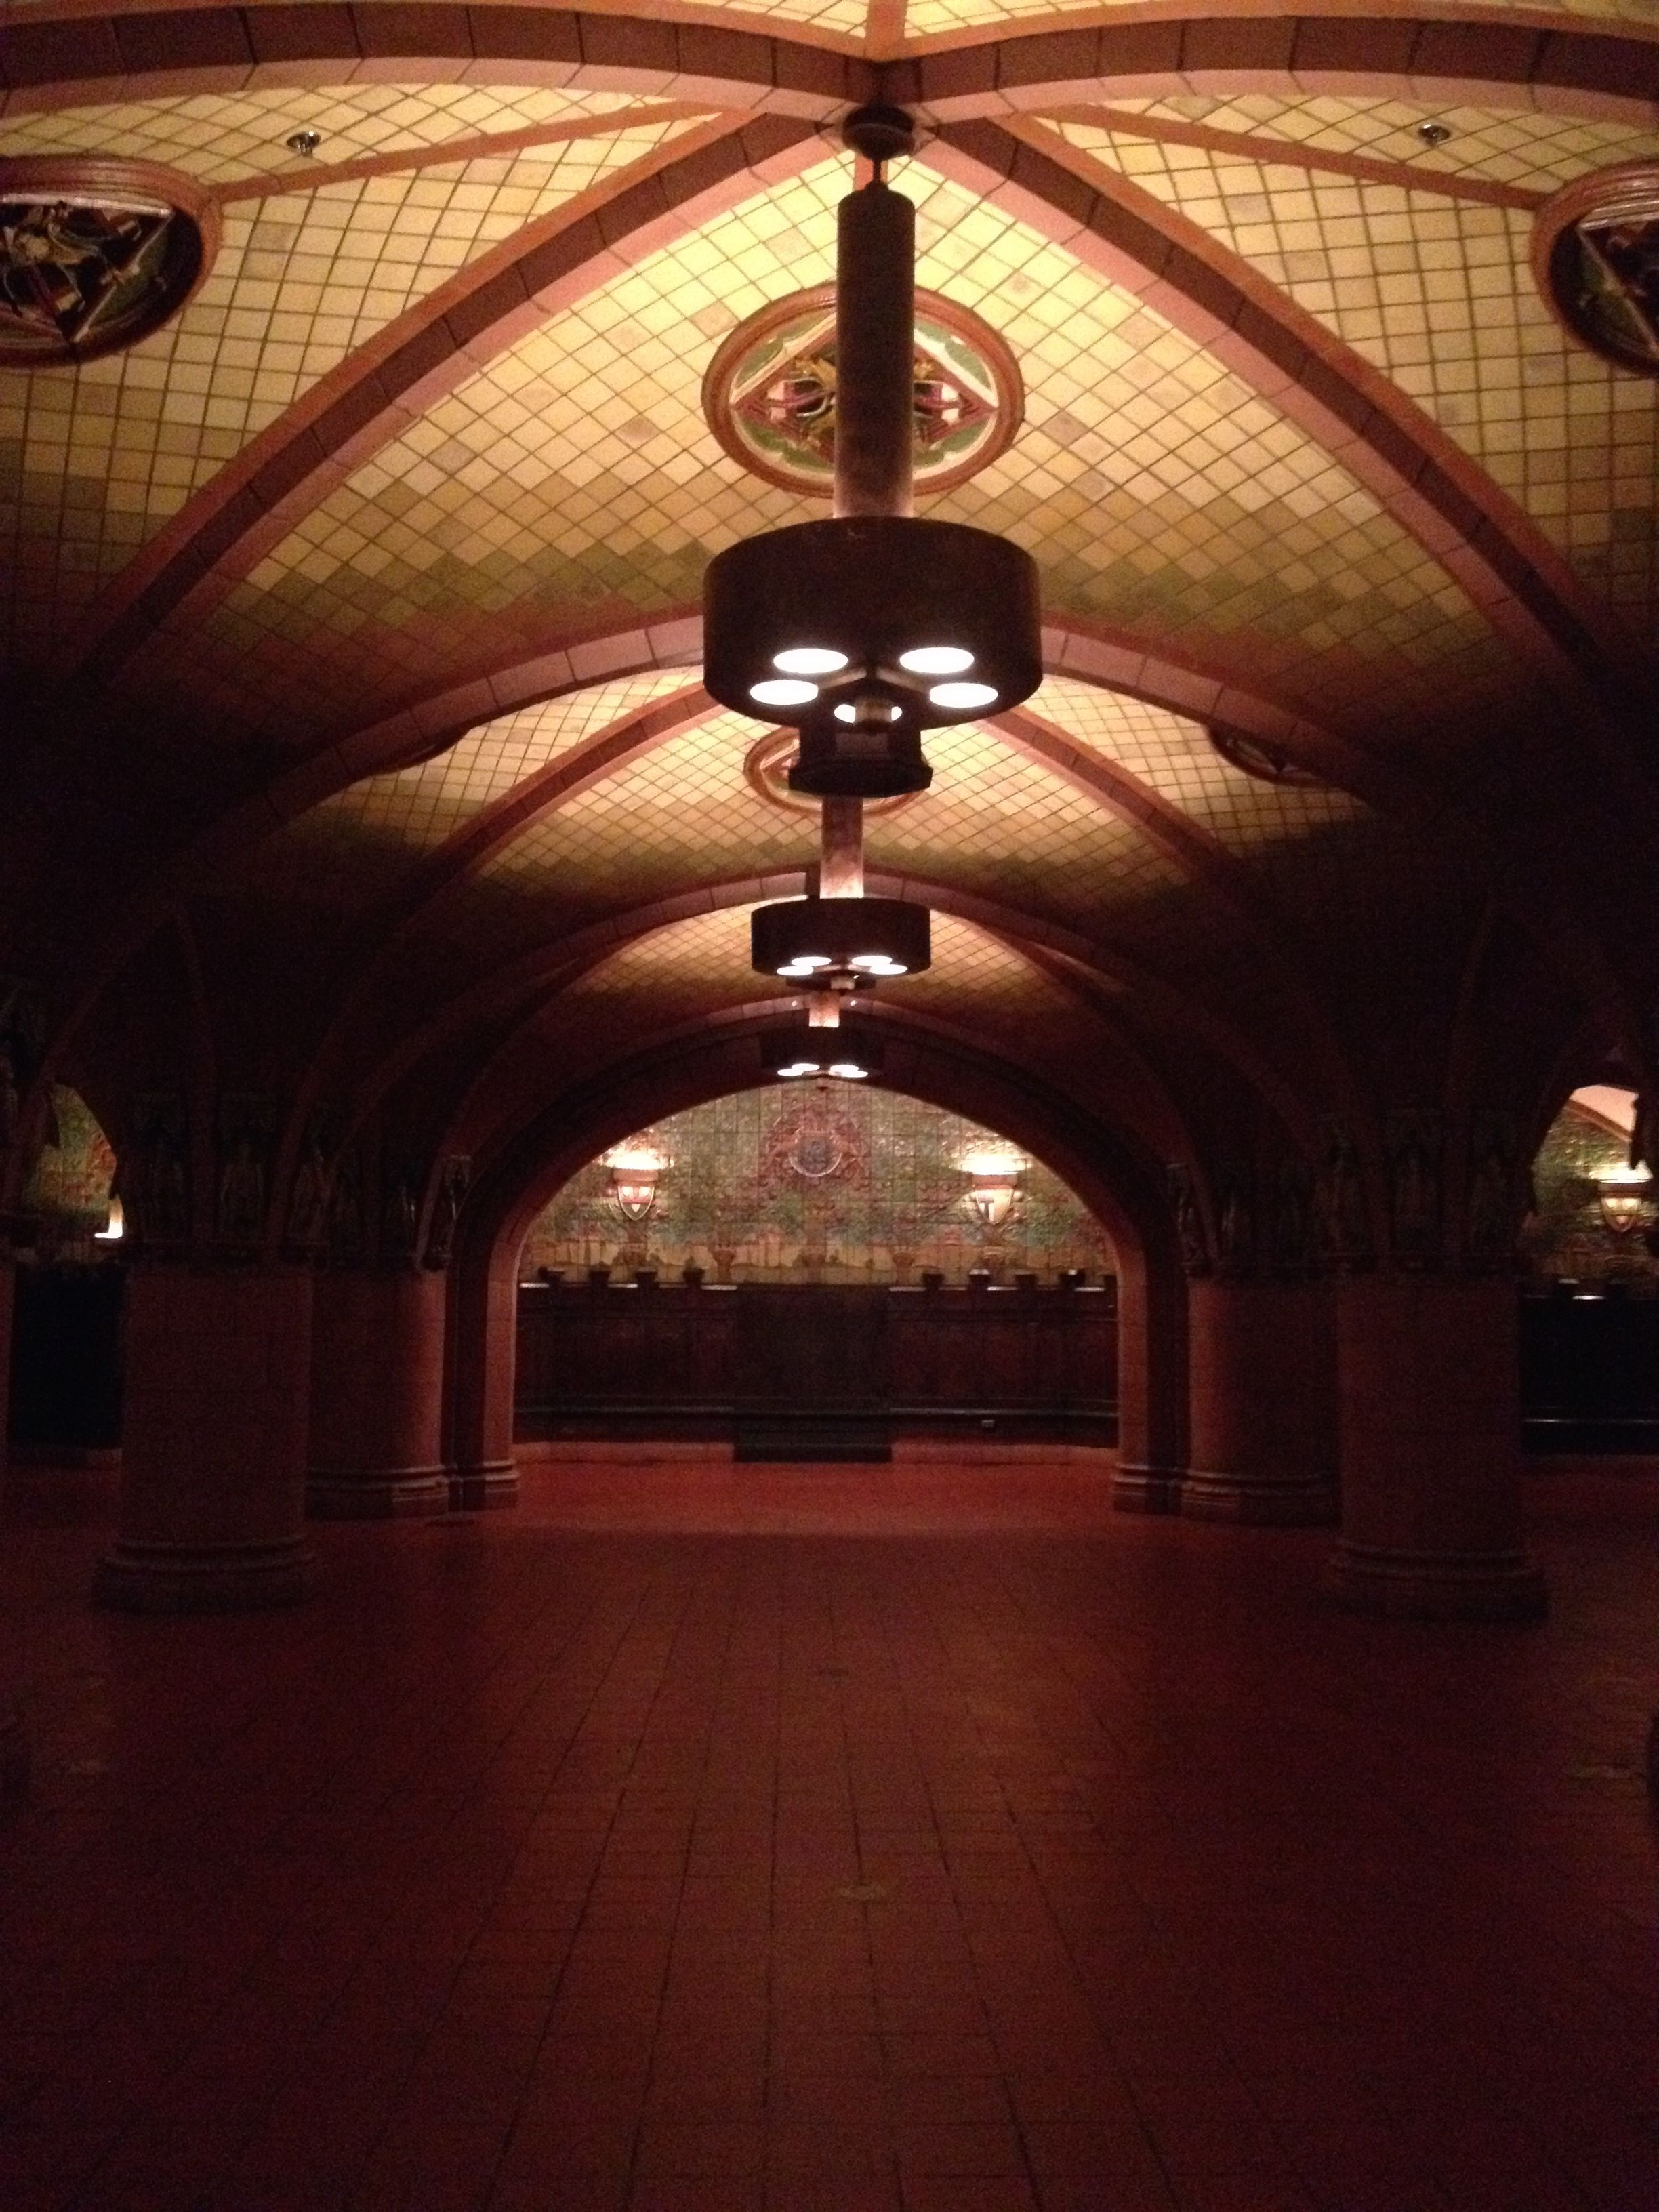 The Rathskeller -- creepiest event space available?